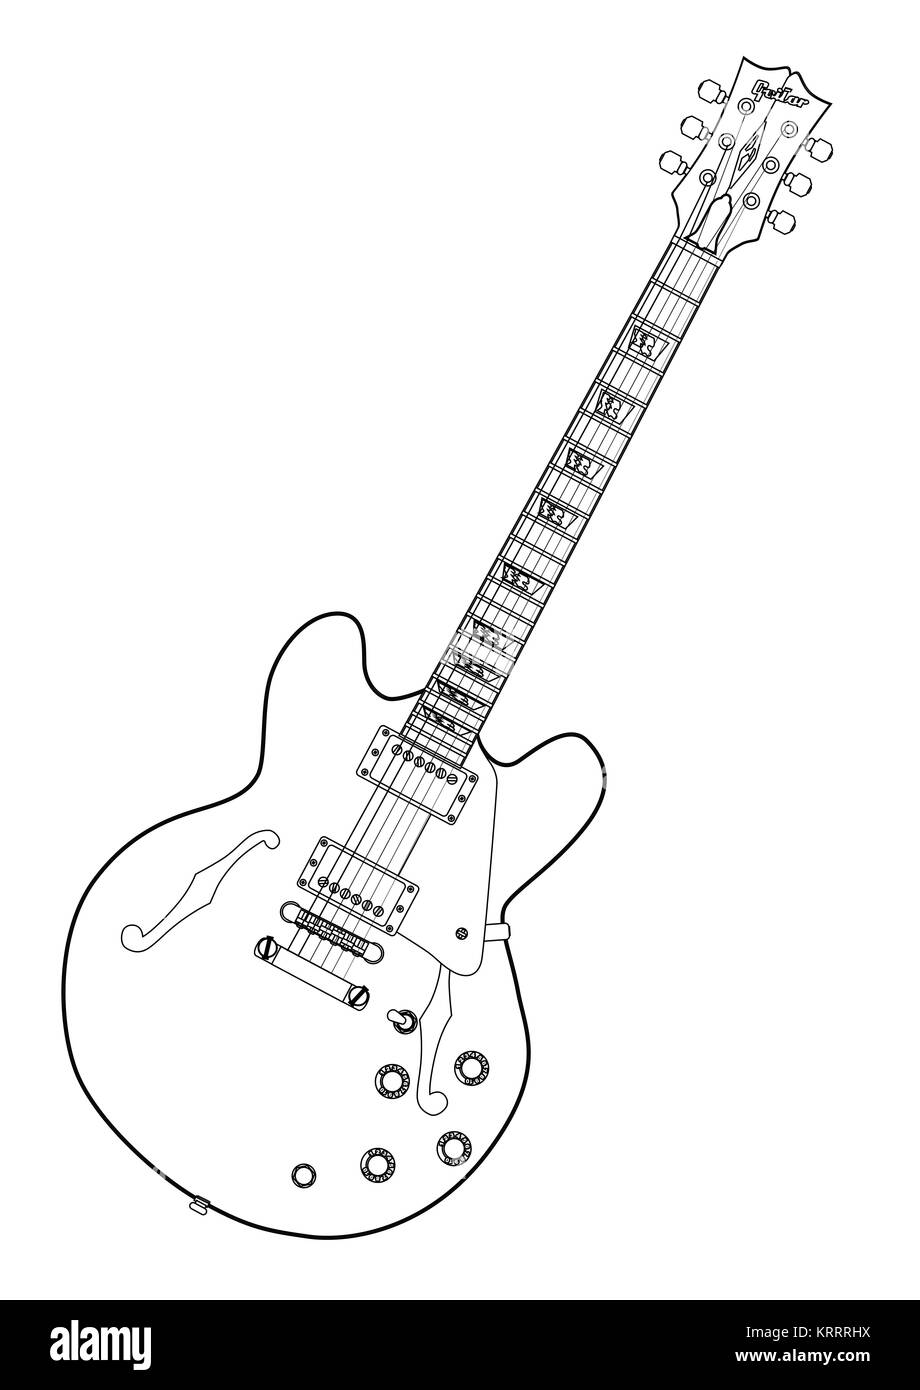 Semi Acoustic Line Drawing Stock Photo Alamy